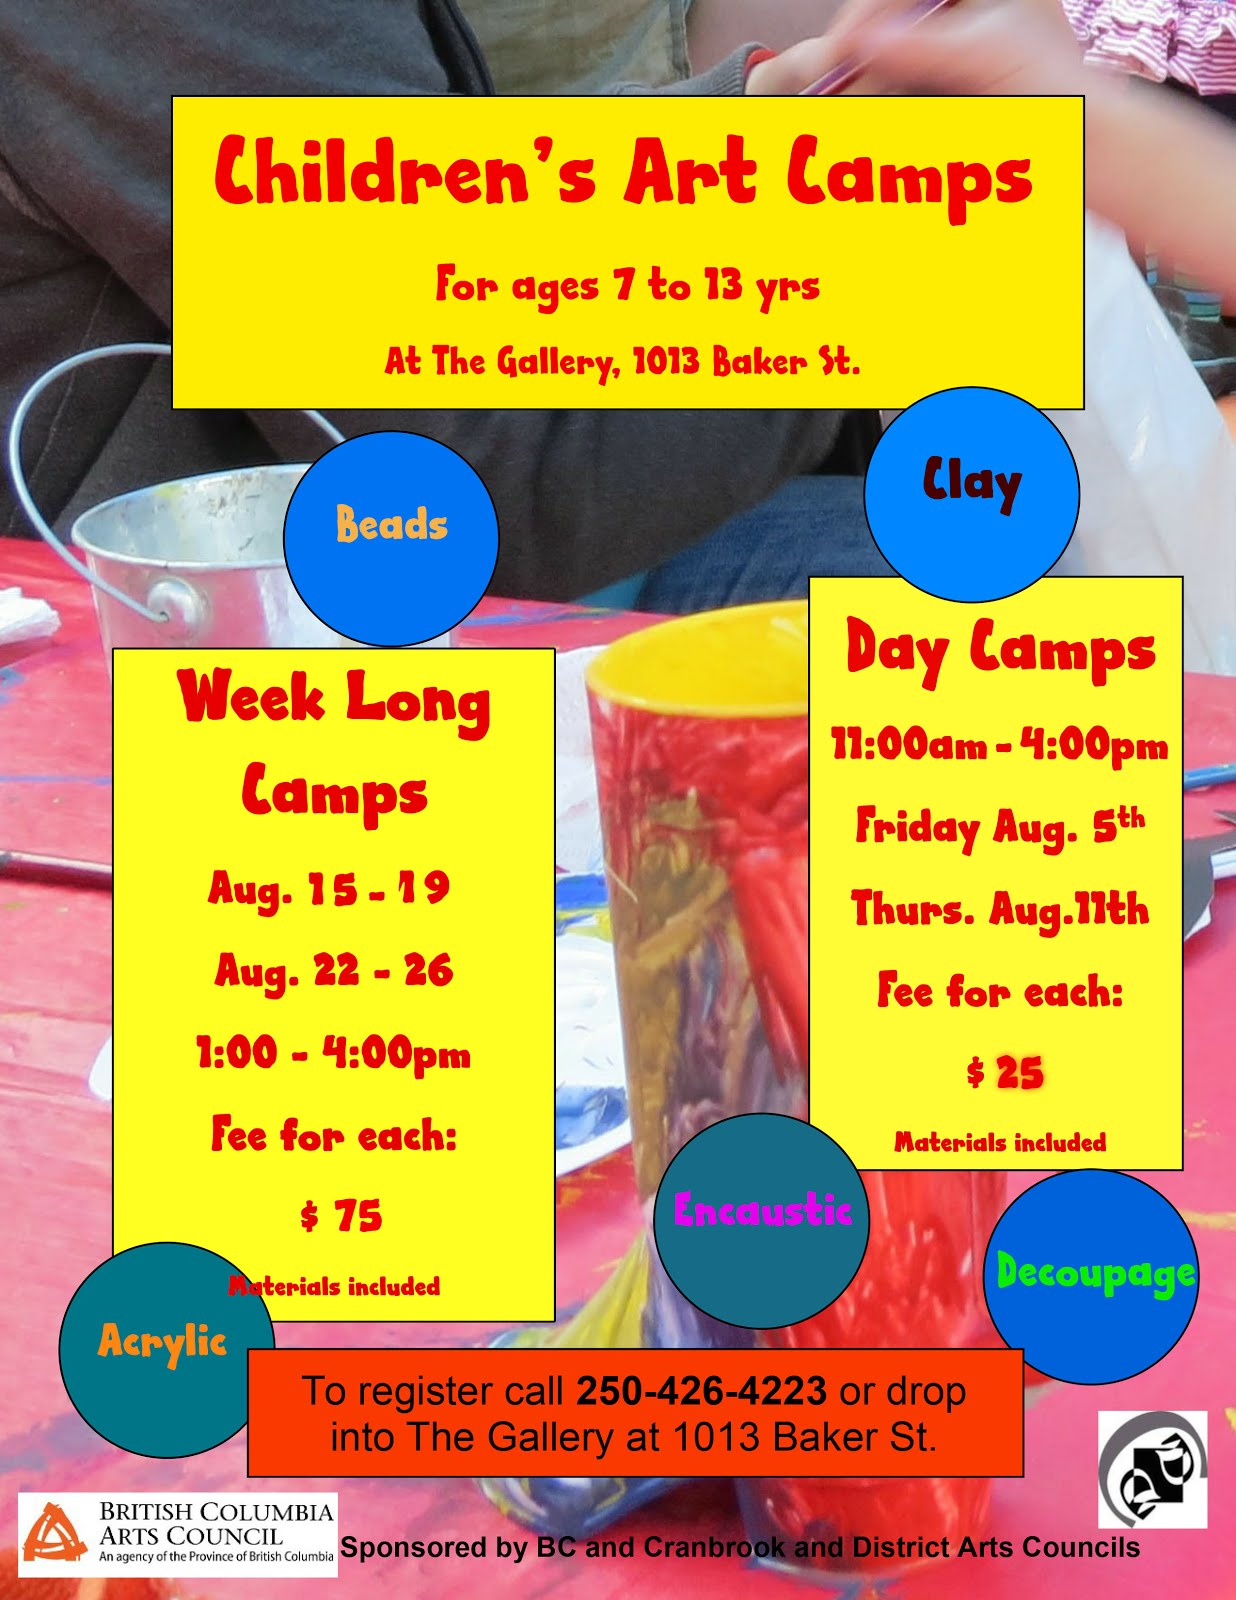 Children's Art Camps